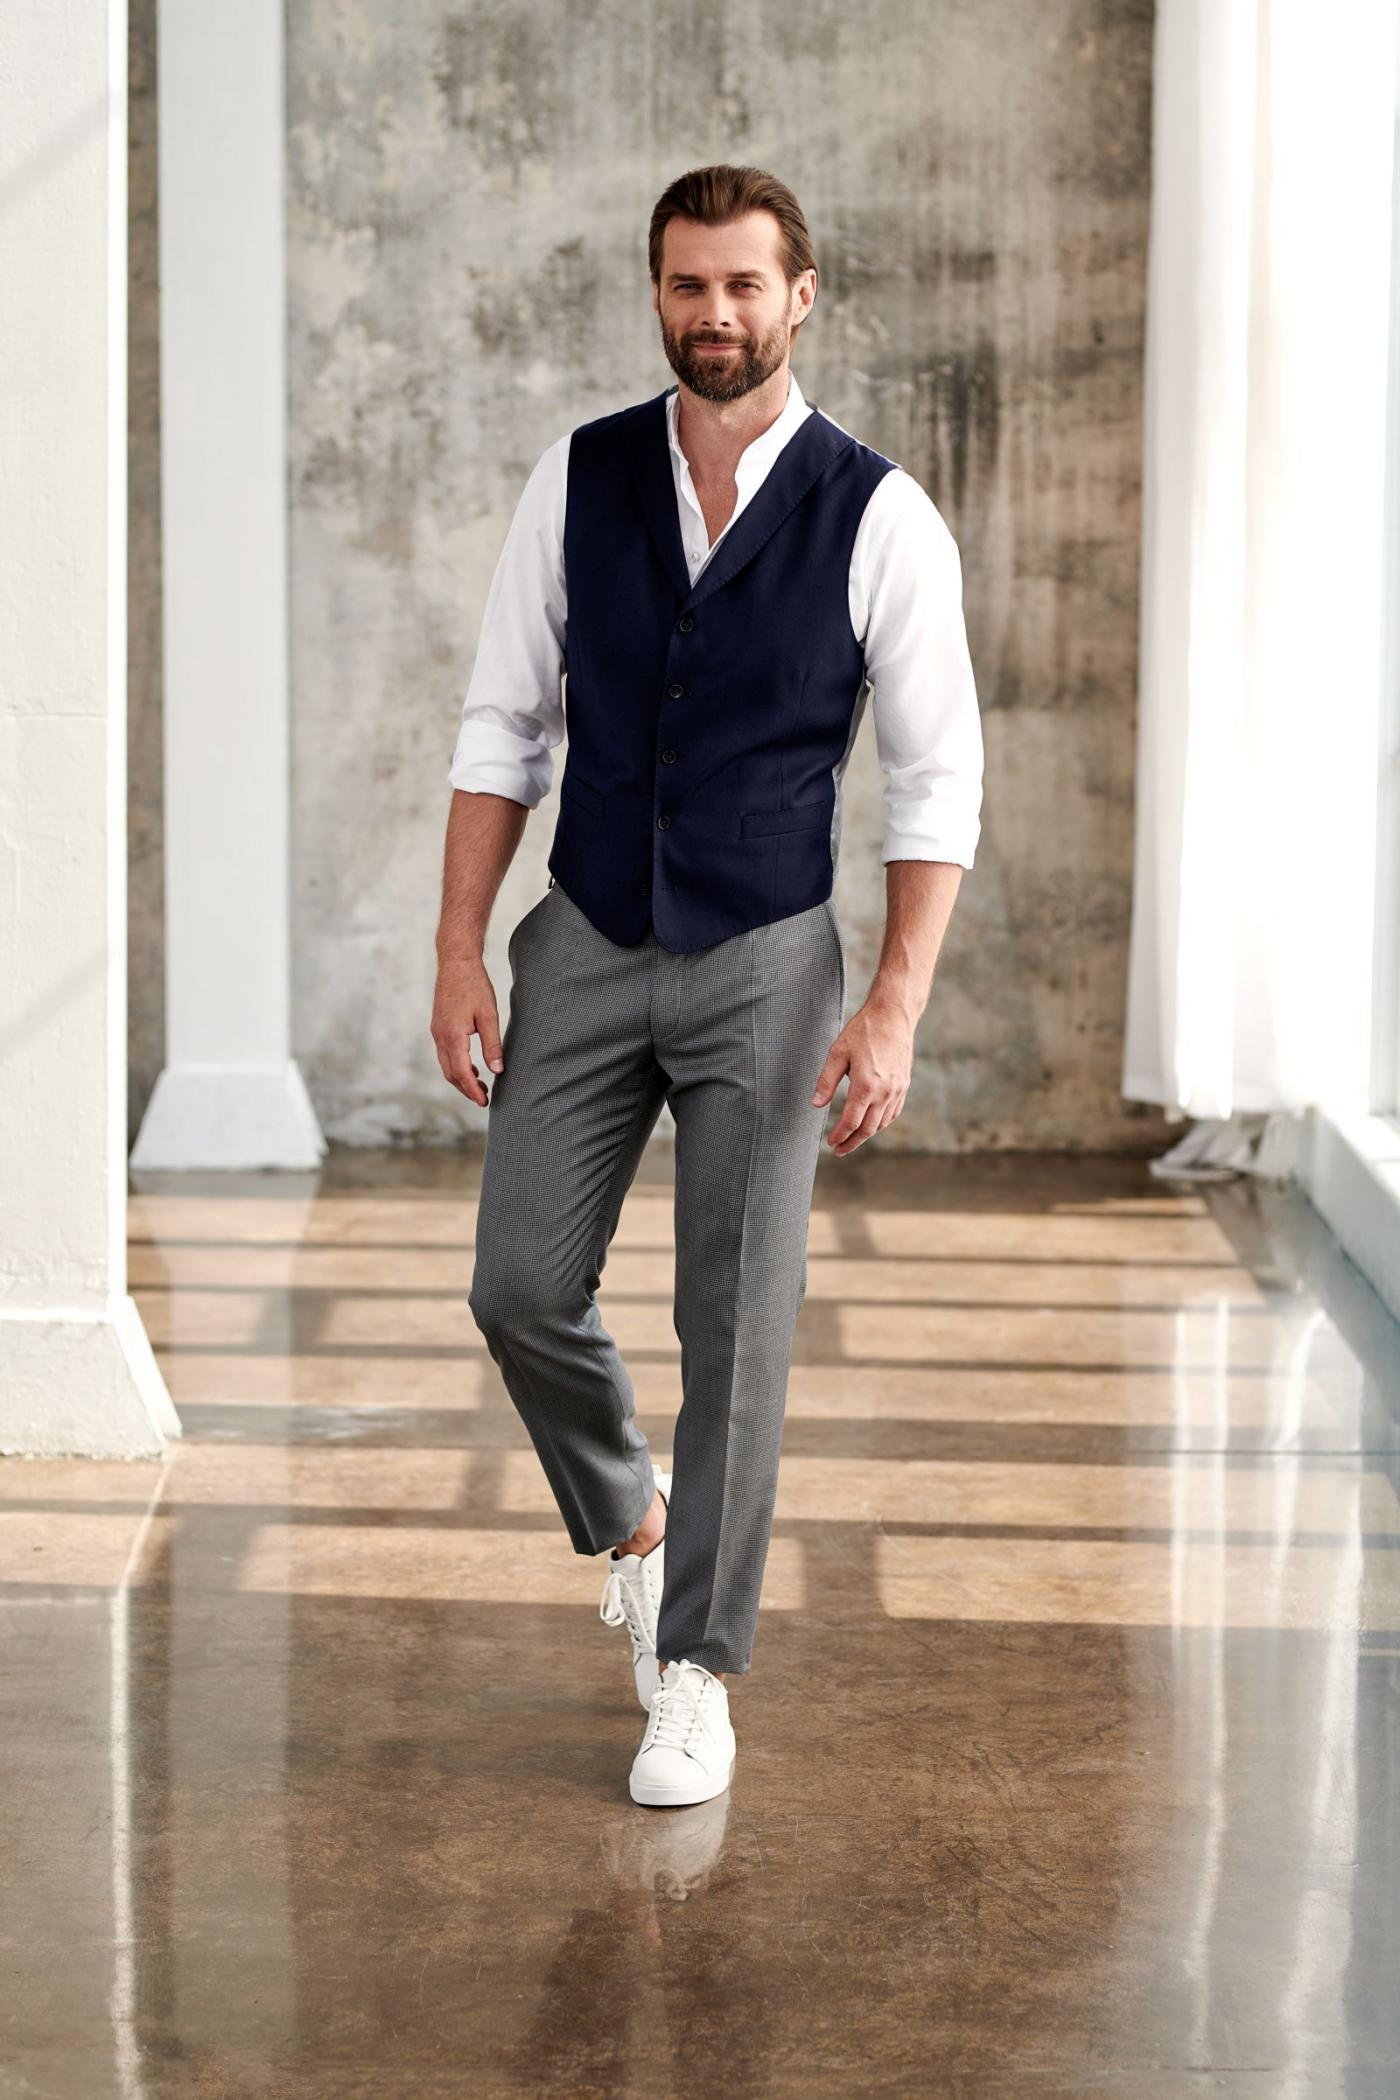 Cocktail or evening party men's look: vest, shirt, pants and low-top trainers